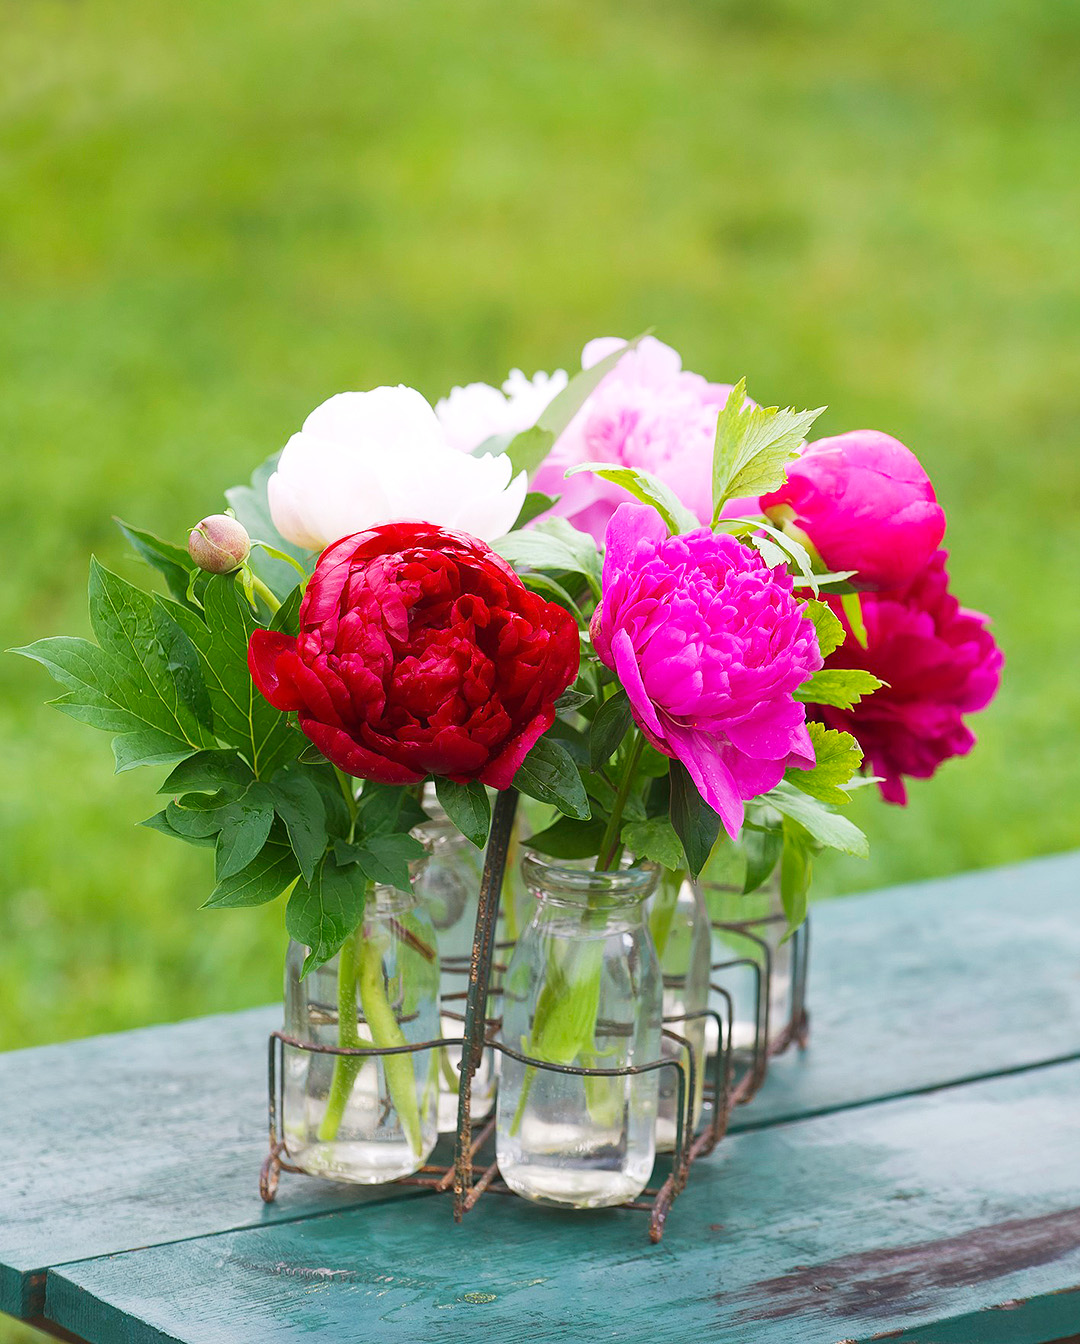 red white and pink peonies in glass jar vases on table